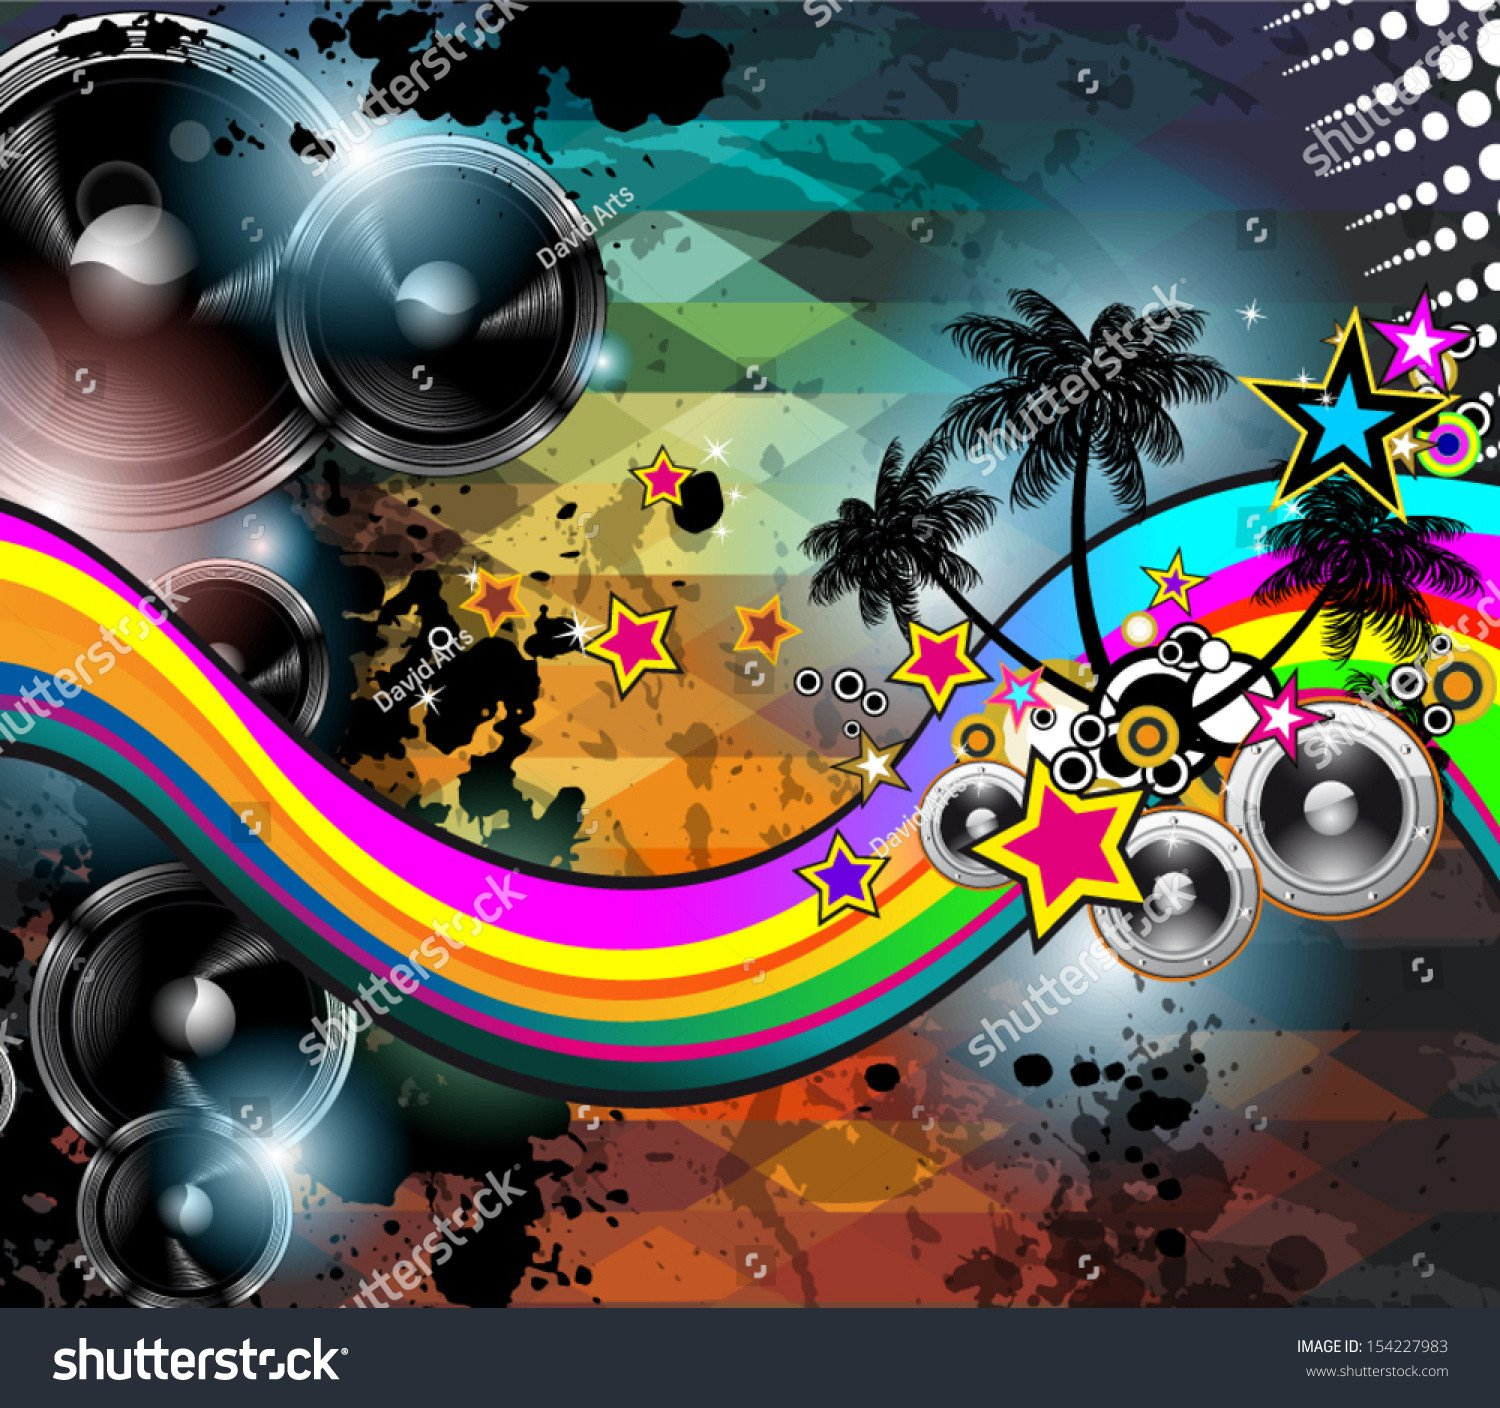 Club Flyer Background Templates Abstract Club Flyer Template Abstract Background to Use